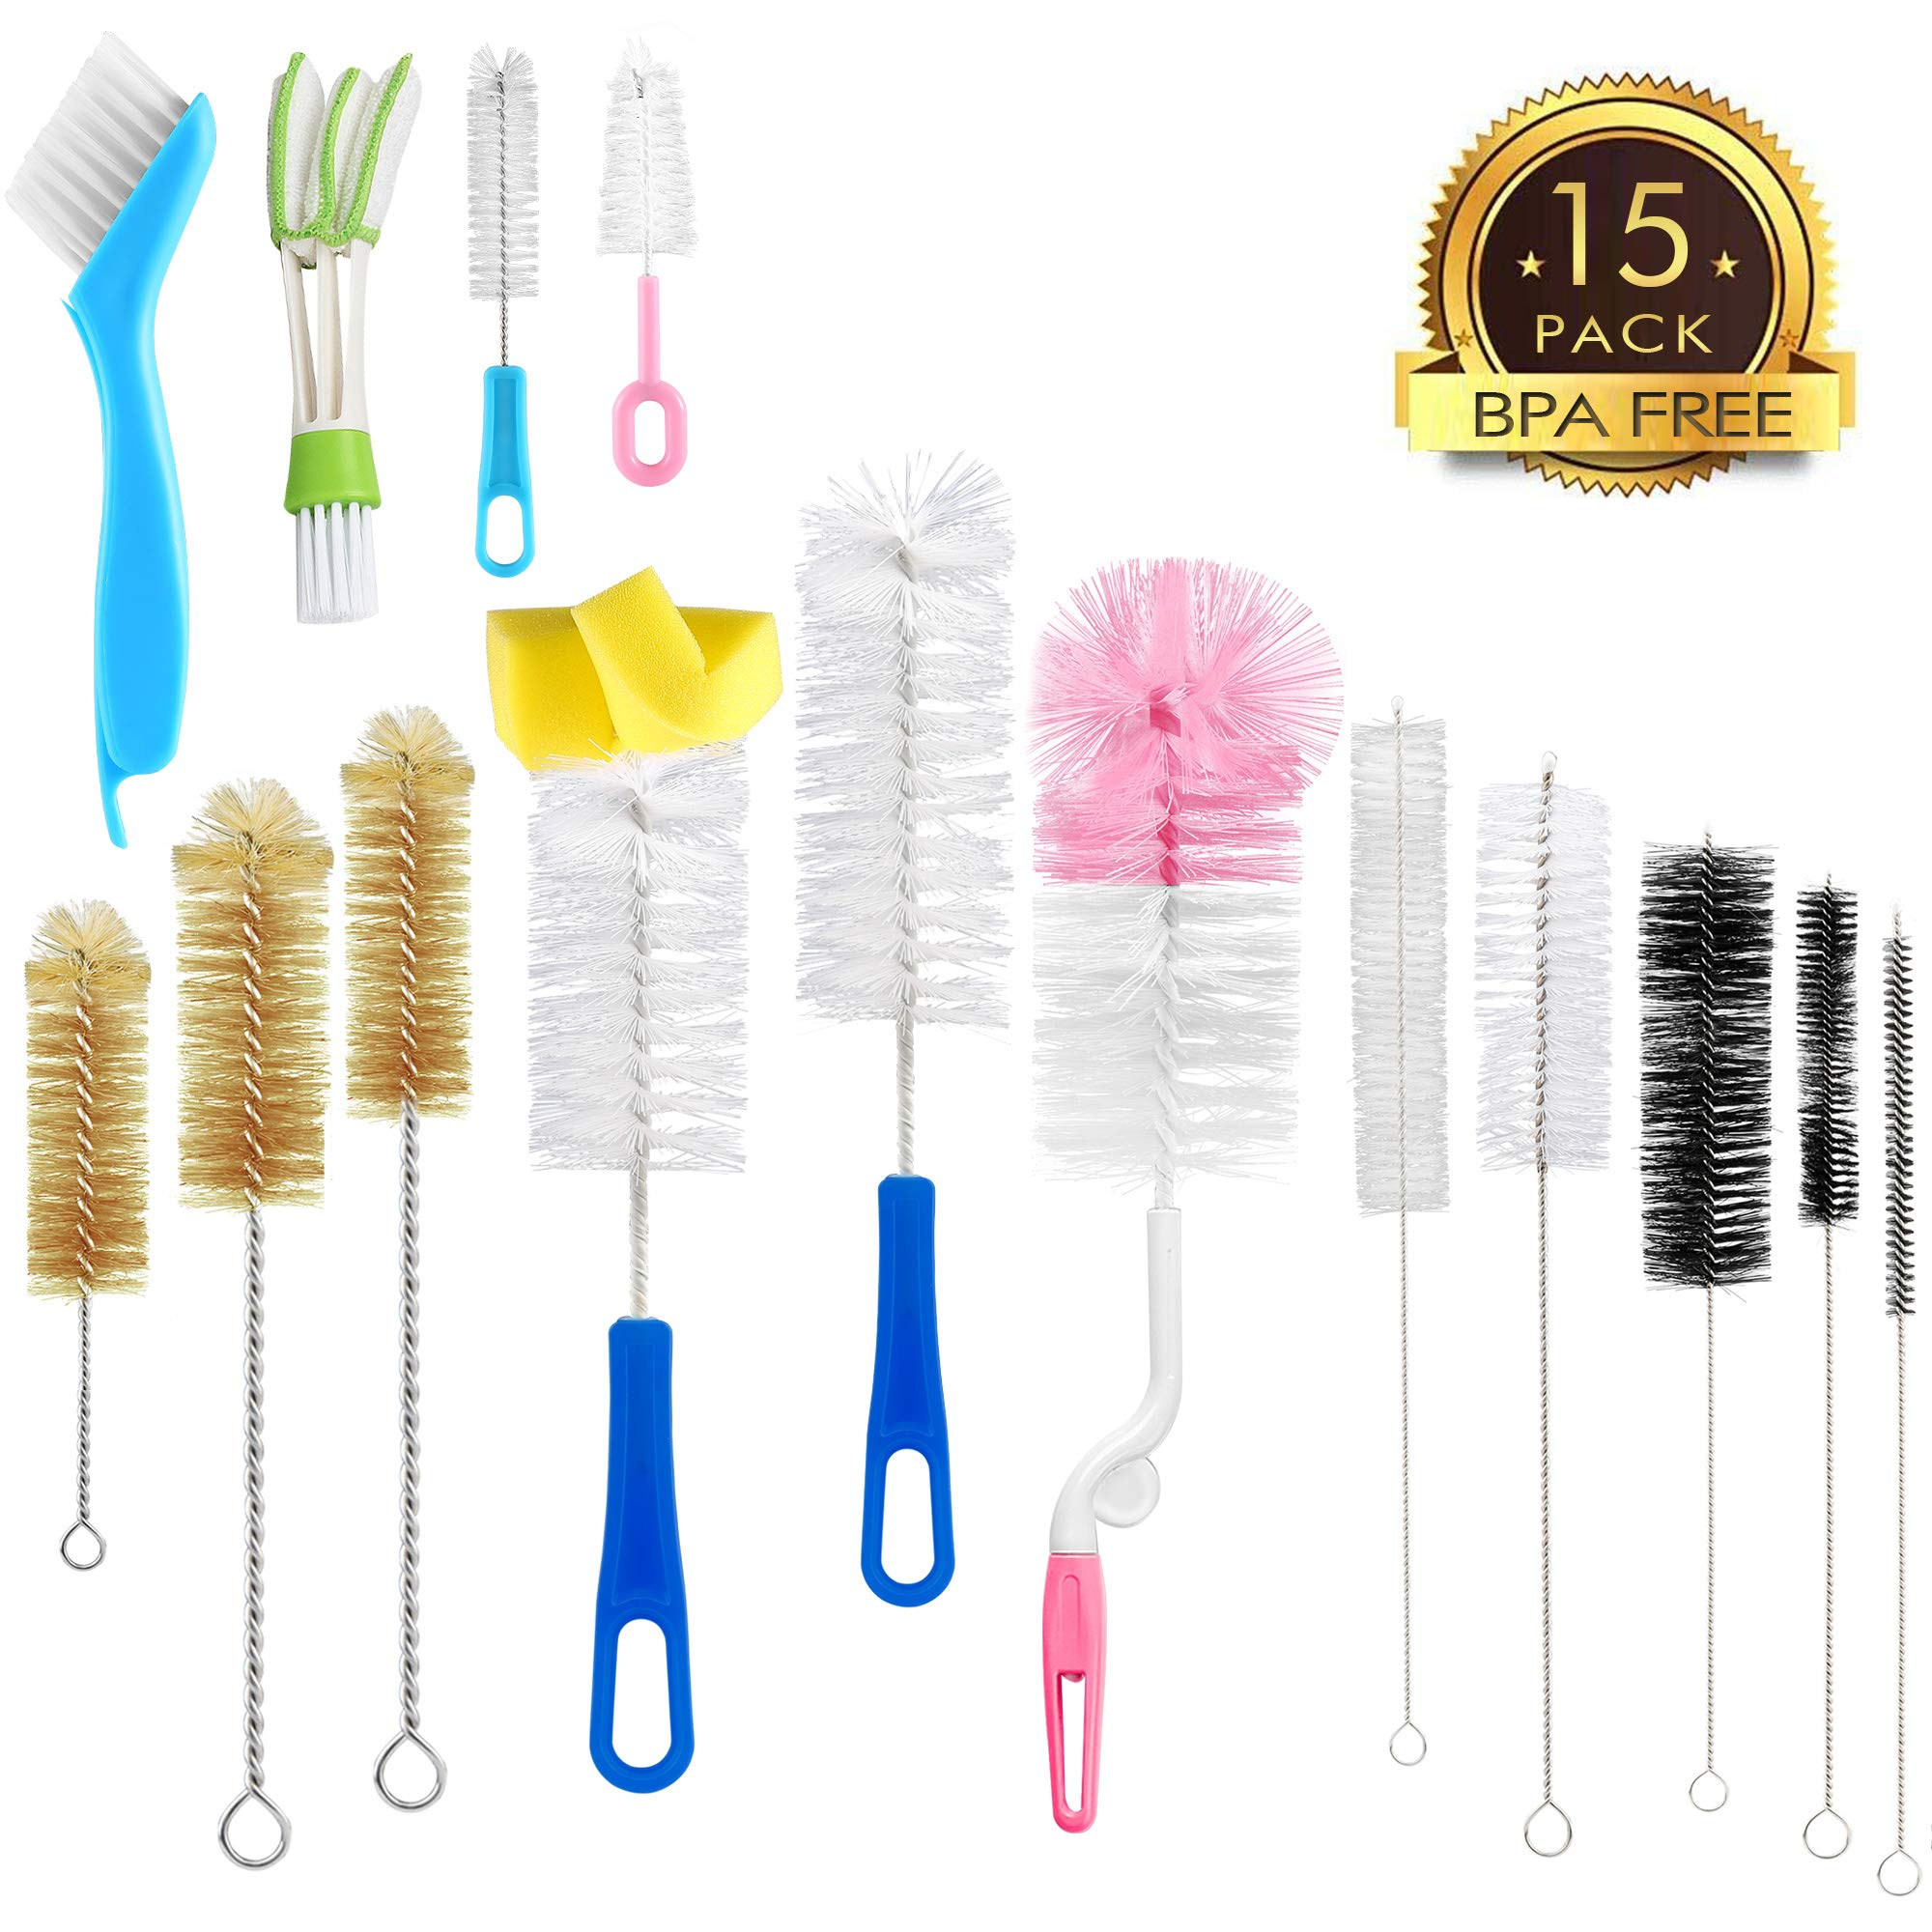 15Pcs Food Grade Multipurpose Cleaning Brush Set,Lab Cleaning Brushes,Include Straw Brush|Bottle Brush|Blind Duster|Pipe Cleaner,Small,Long,Soft,Stiff Kit for Baby Bottles,Nipple,Tubes,Jar,Bird Feeder by Zannaki